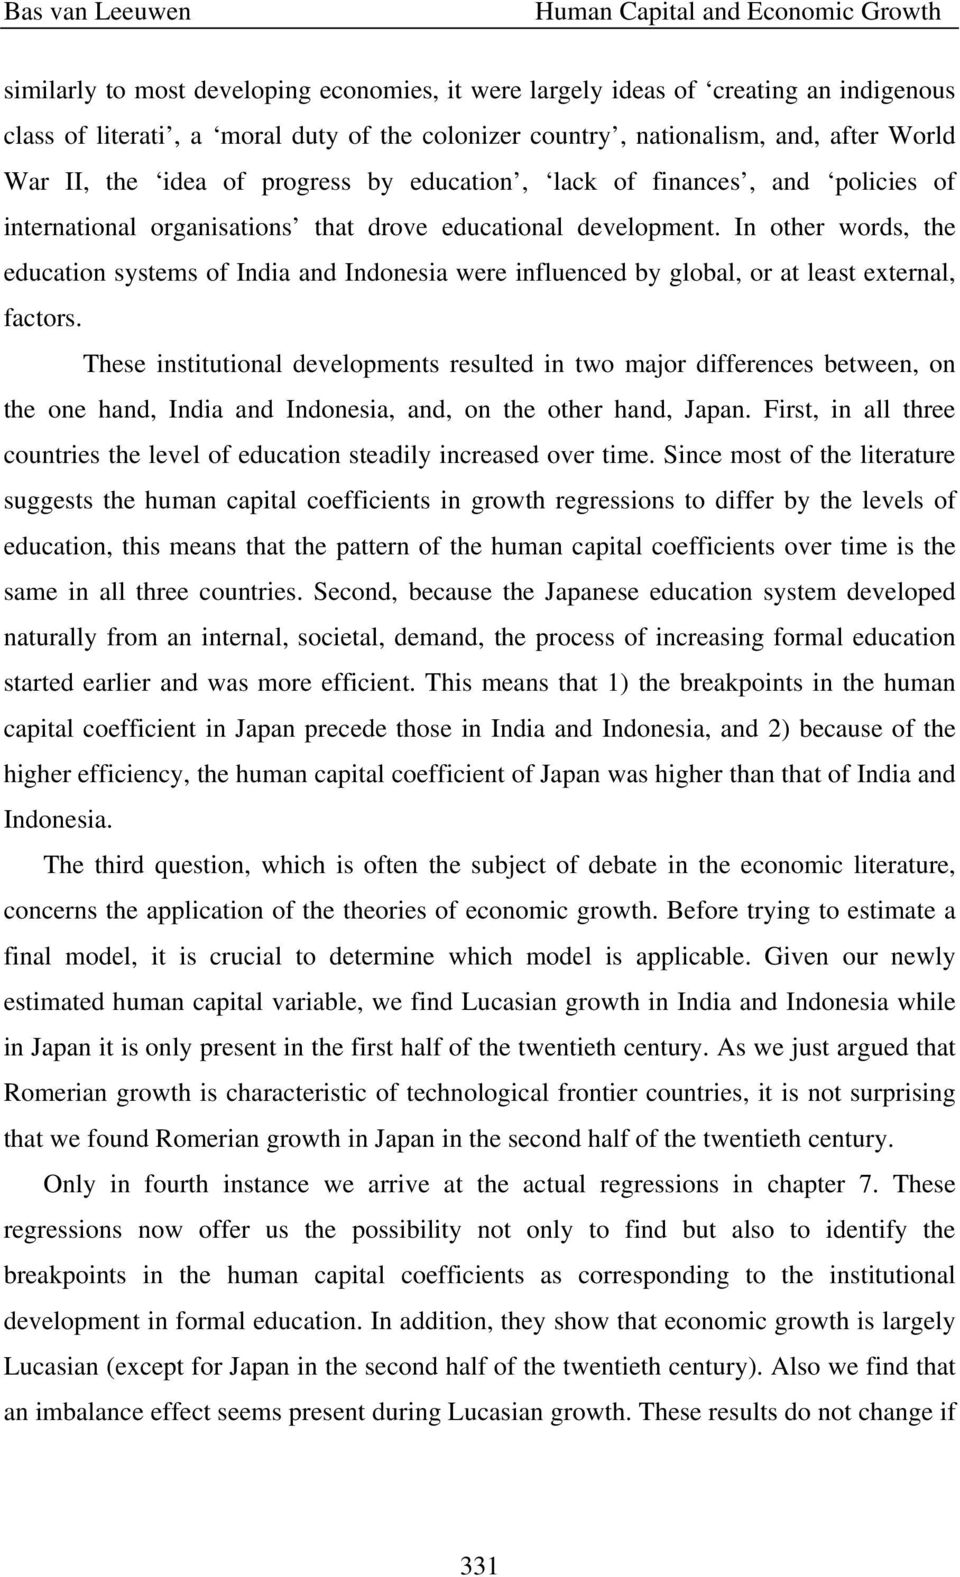 In other words, the education systems of India and Indonesia were influenced by global, or at least external, factors.